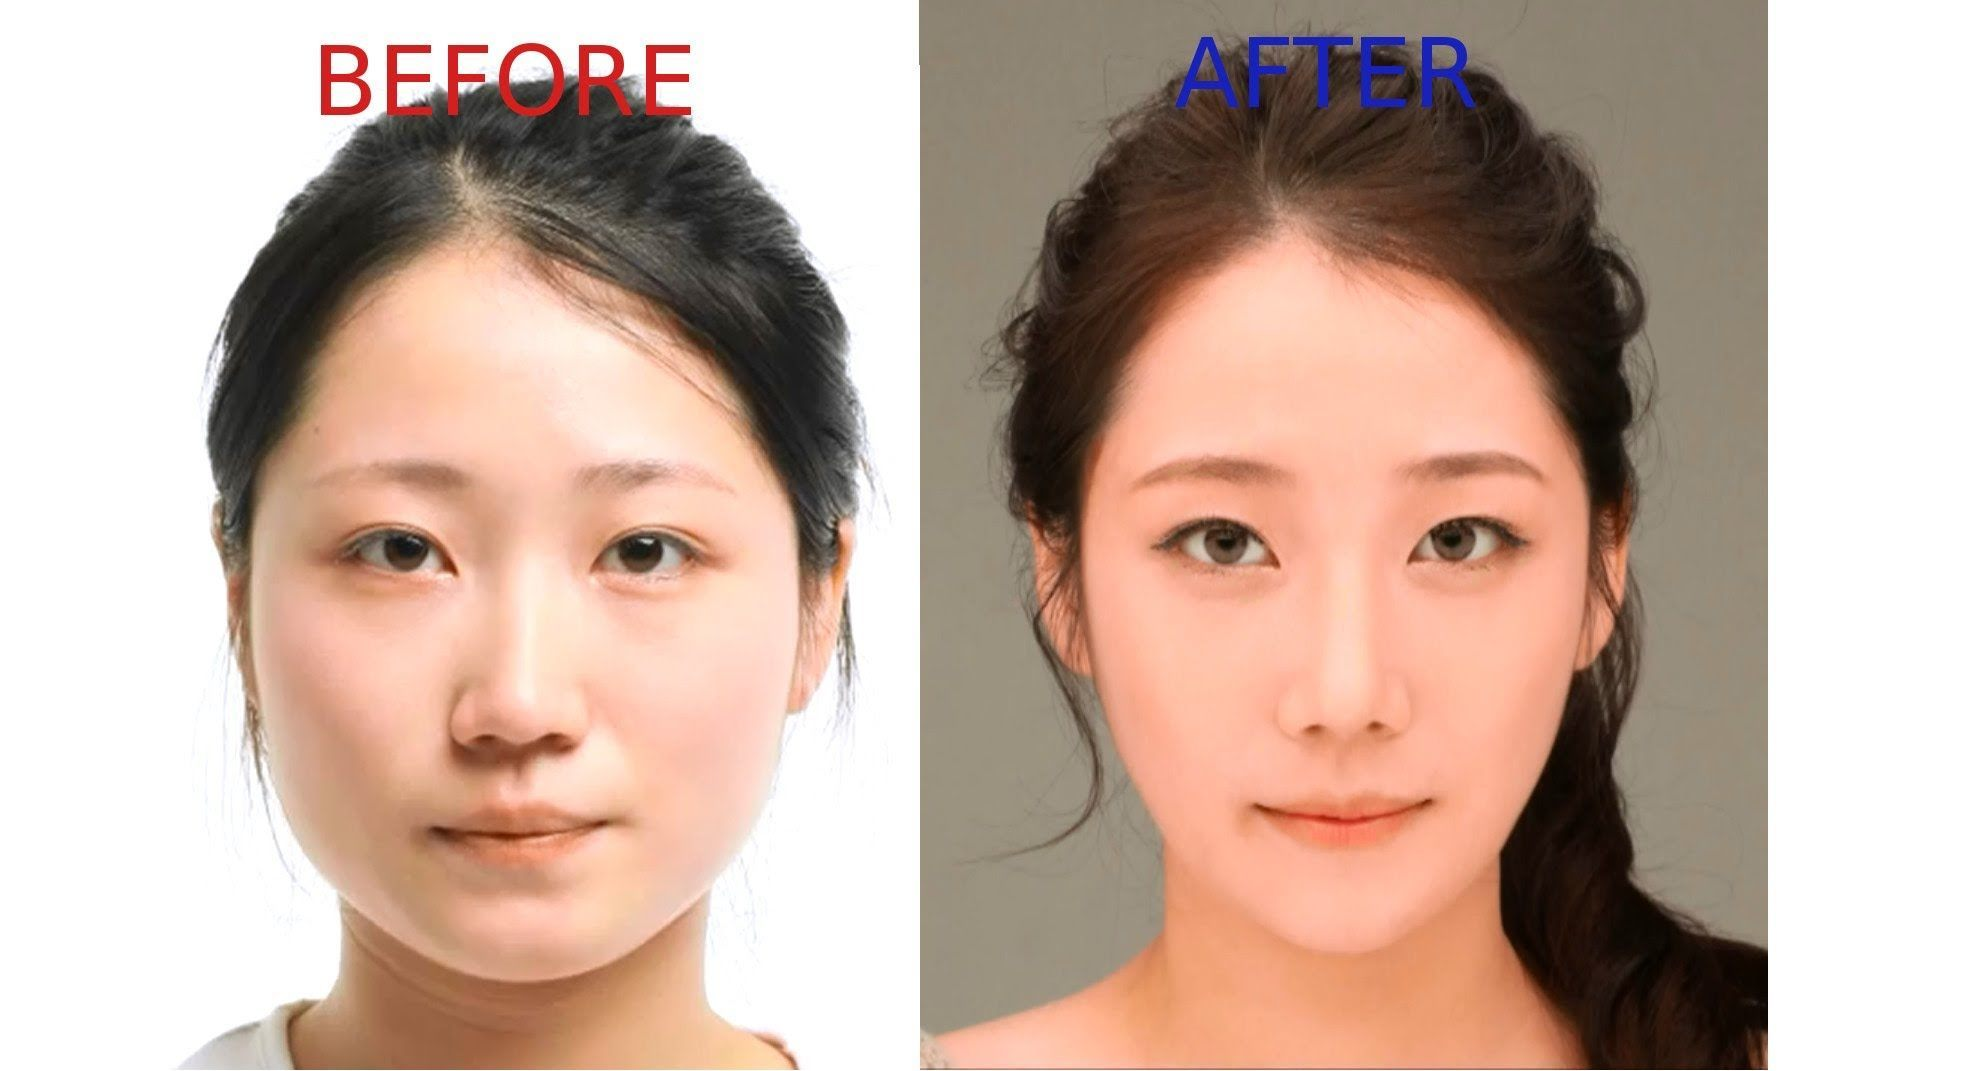 Women Before and After looks after Plastic Surgery